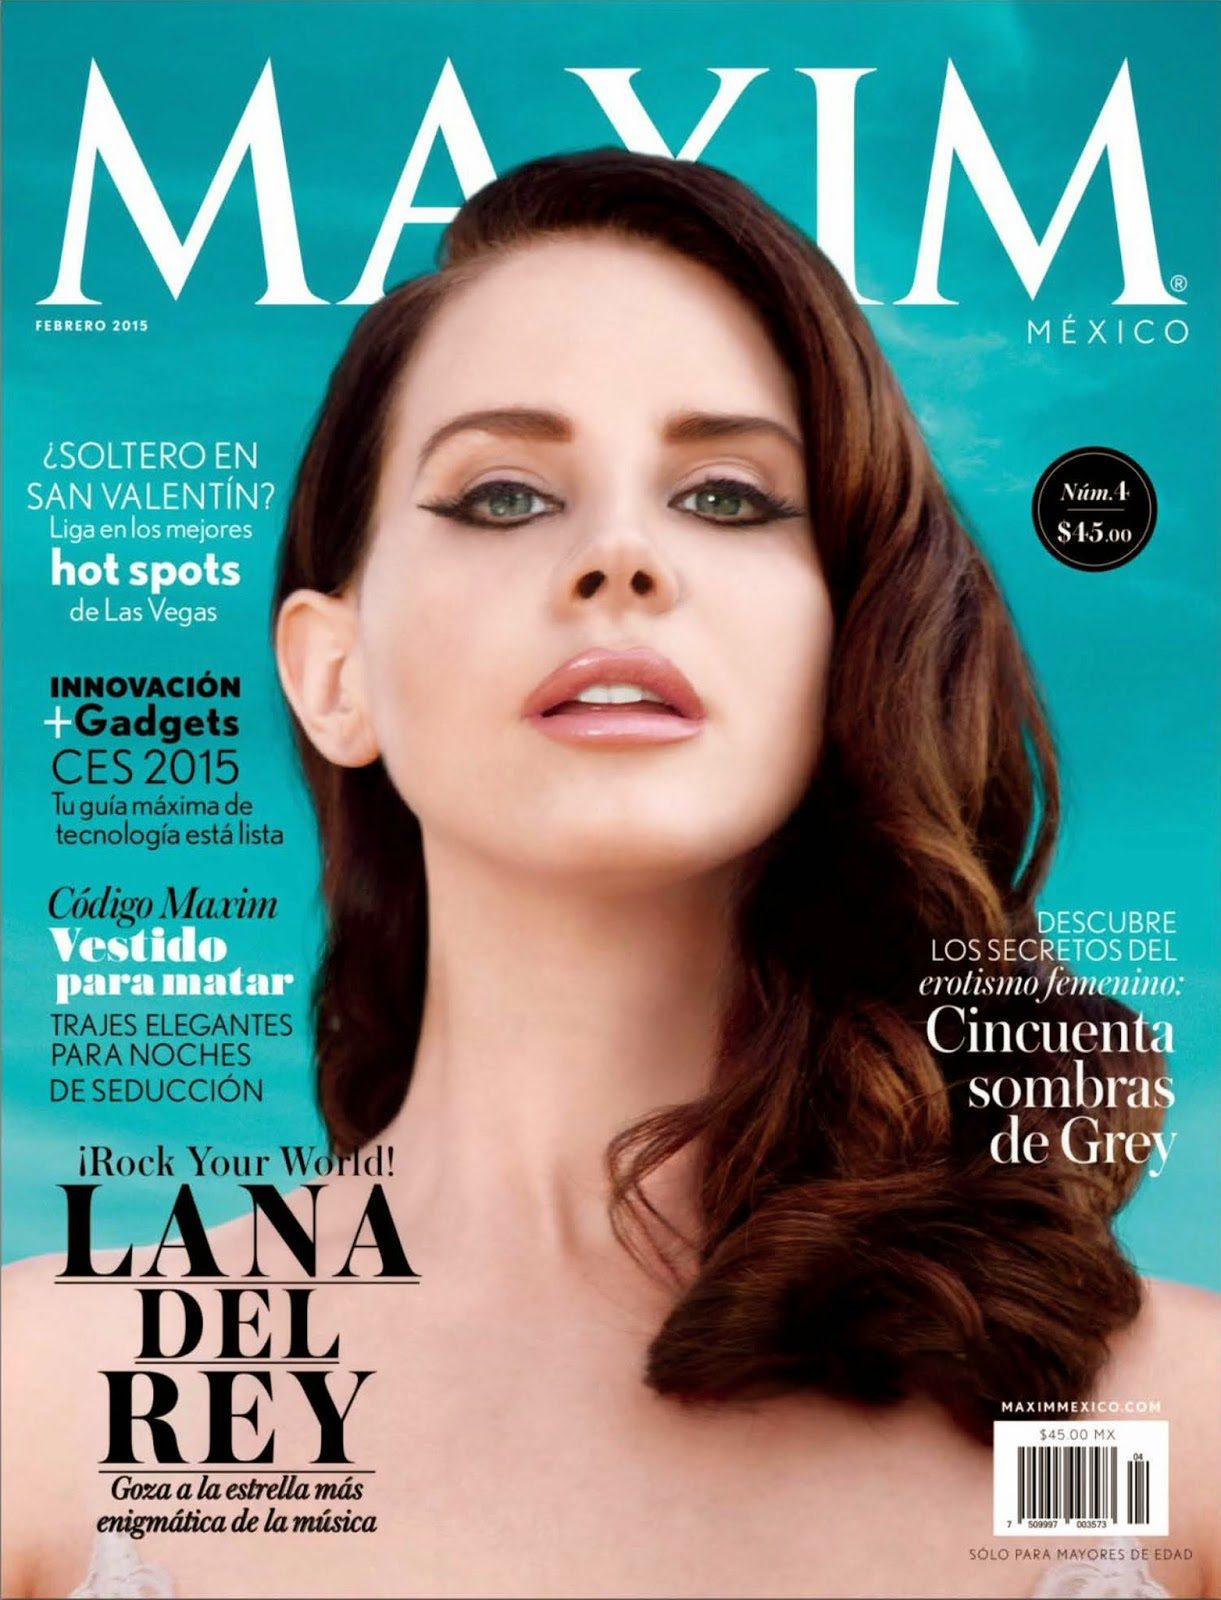 Singer-Songwriter, Model: Lana Del Rey for Maxim Mexico